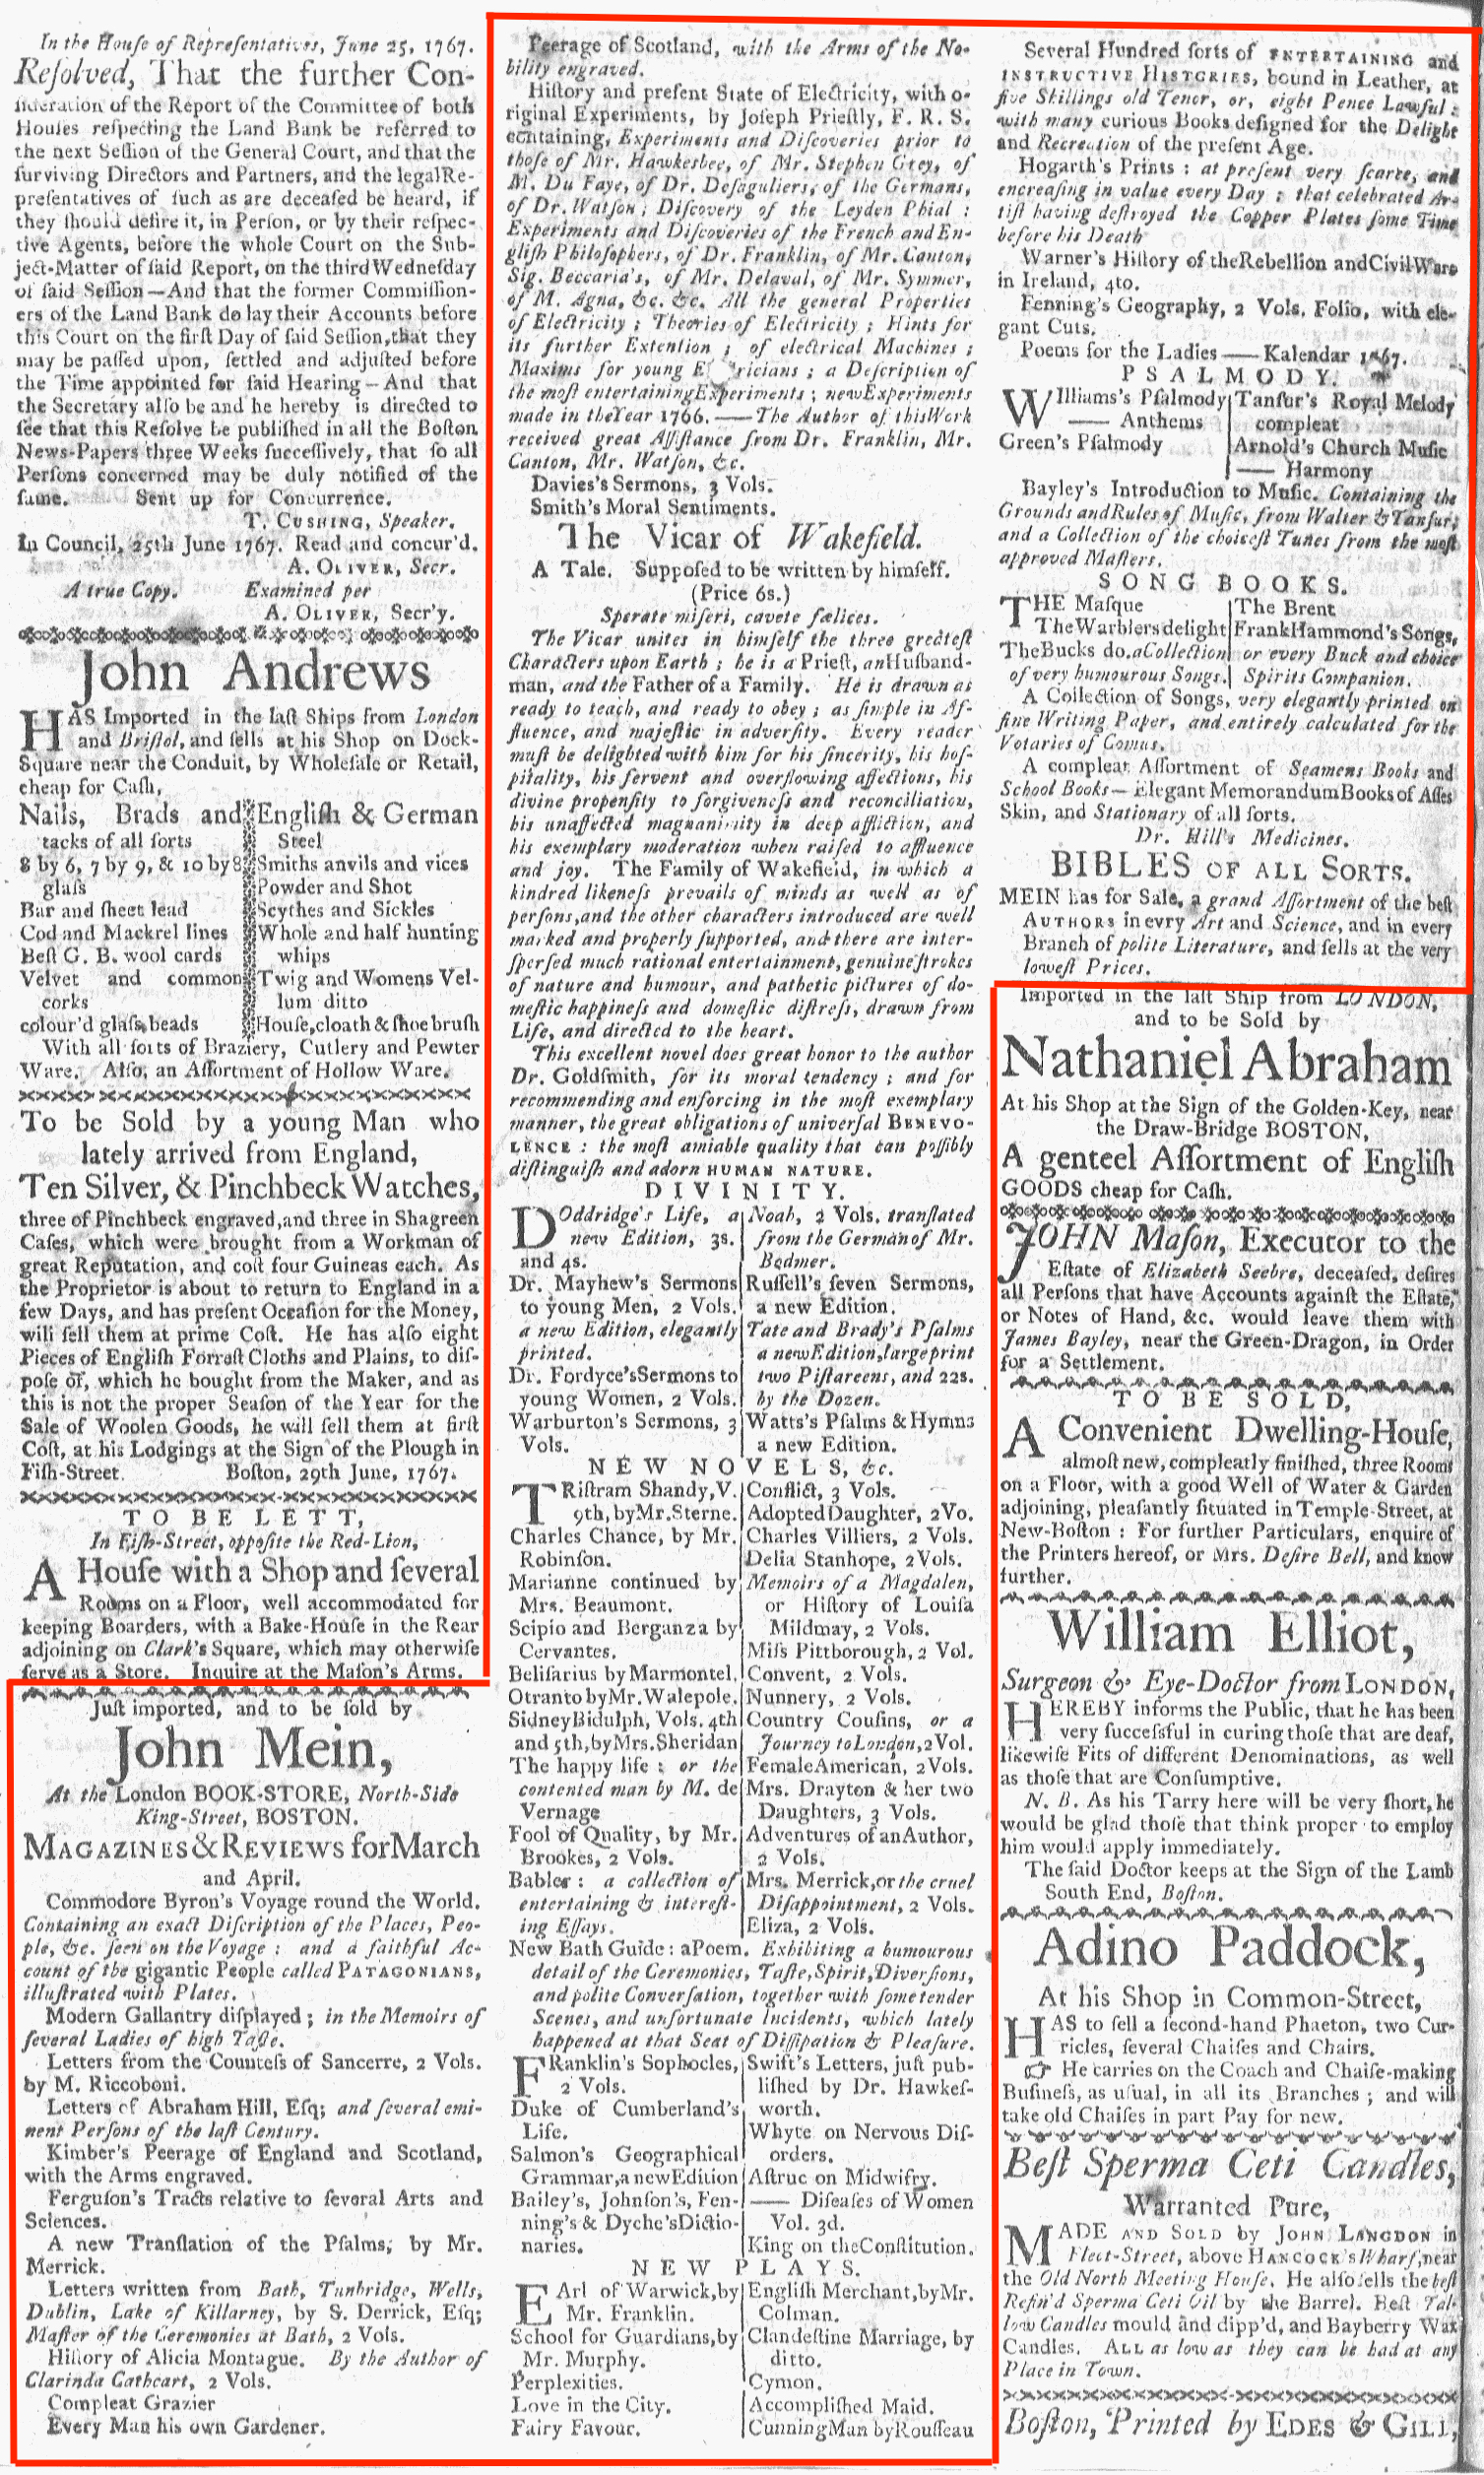 Jul 6 - 7:6:1767 Boston-Gazette